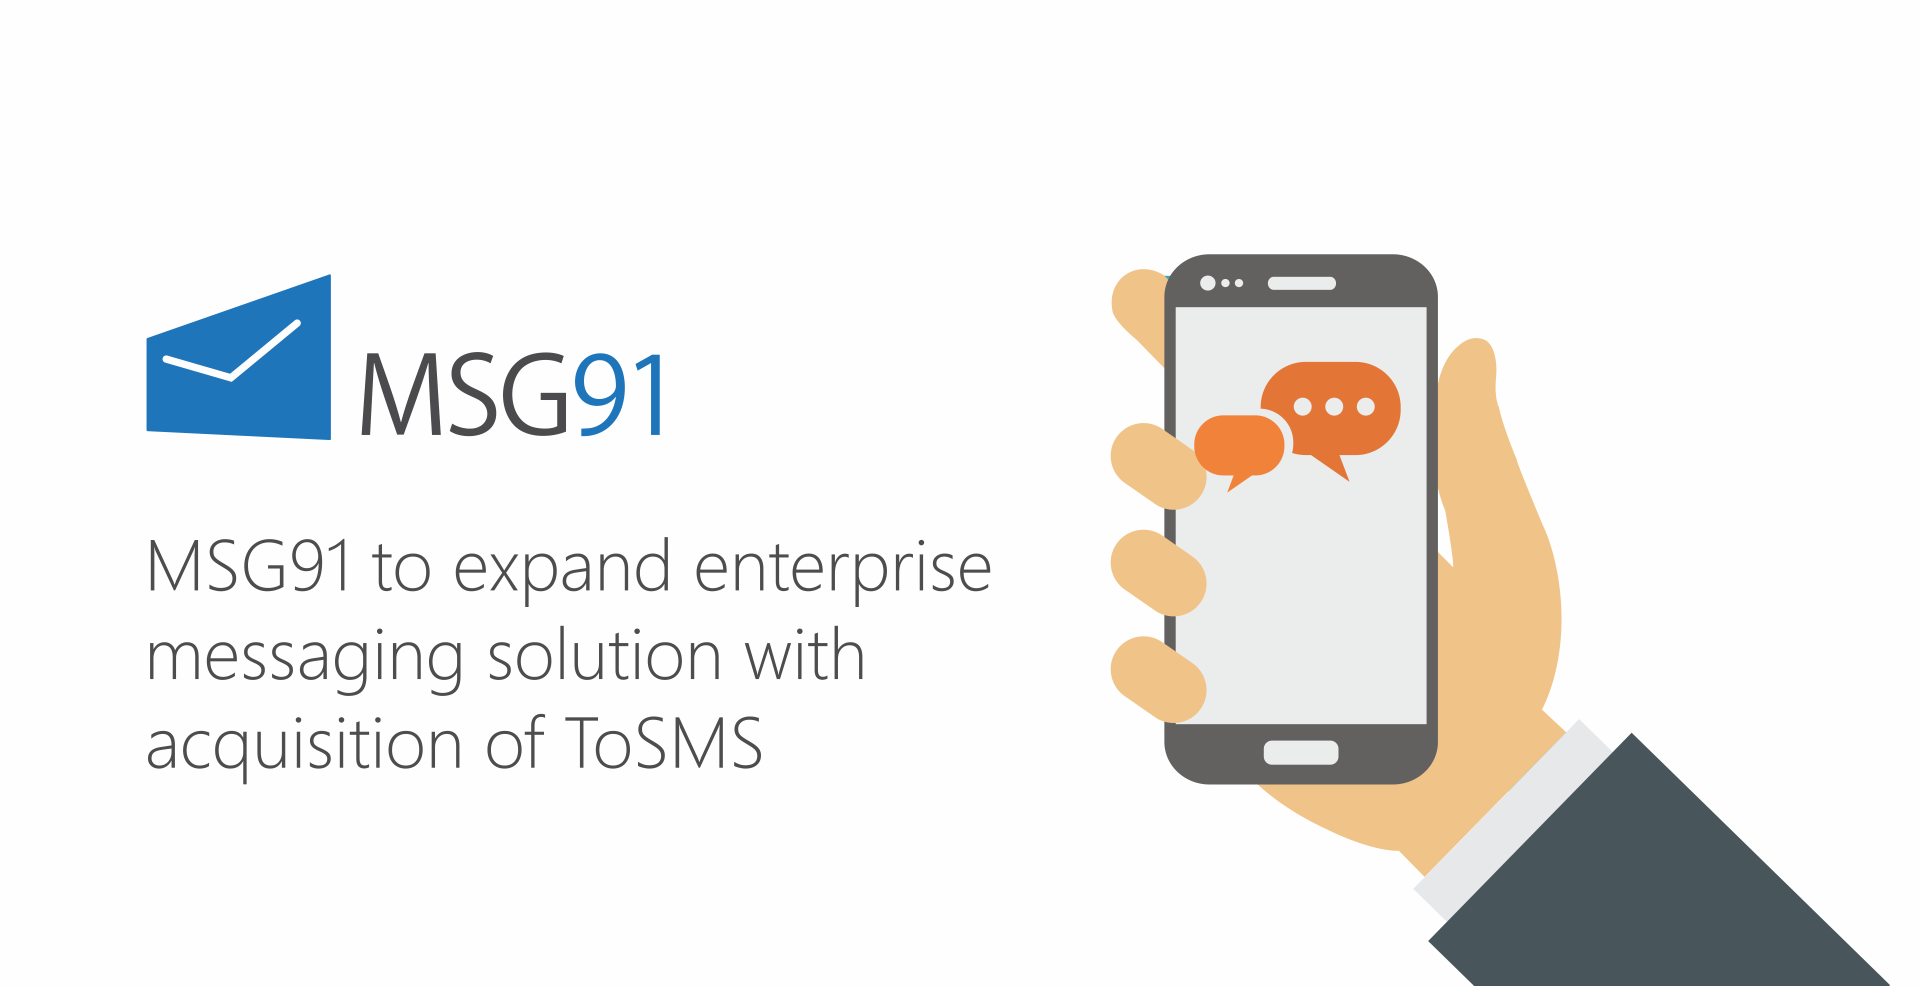 MSG91 to expand enterprise messaging solution with acquisition of ToSMS